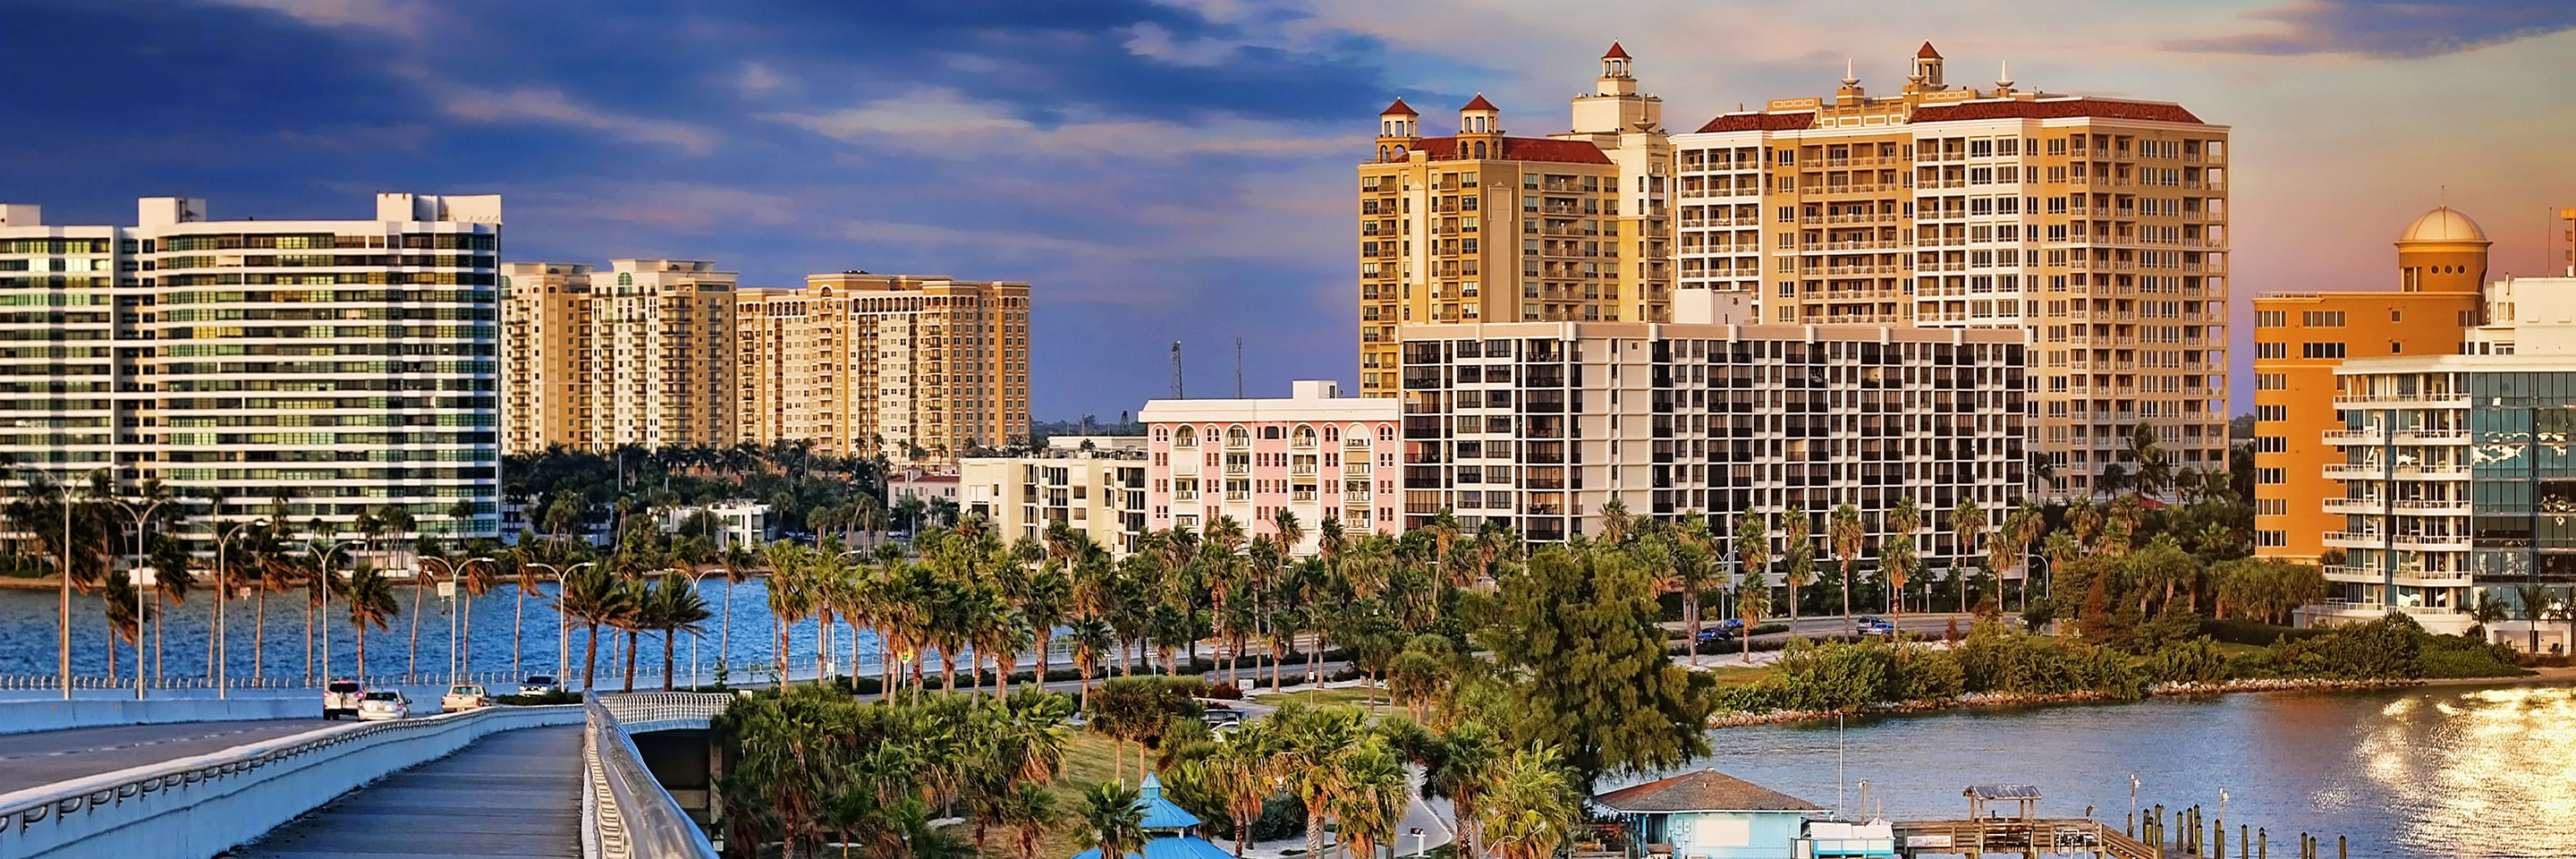 Hotels in Sarasota